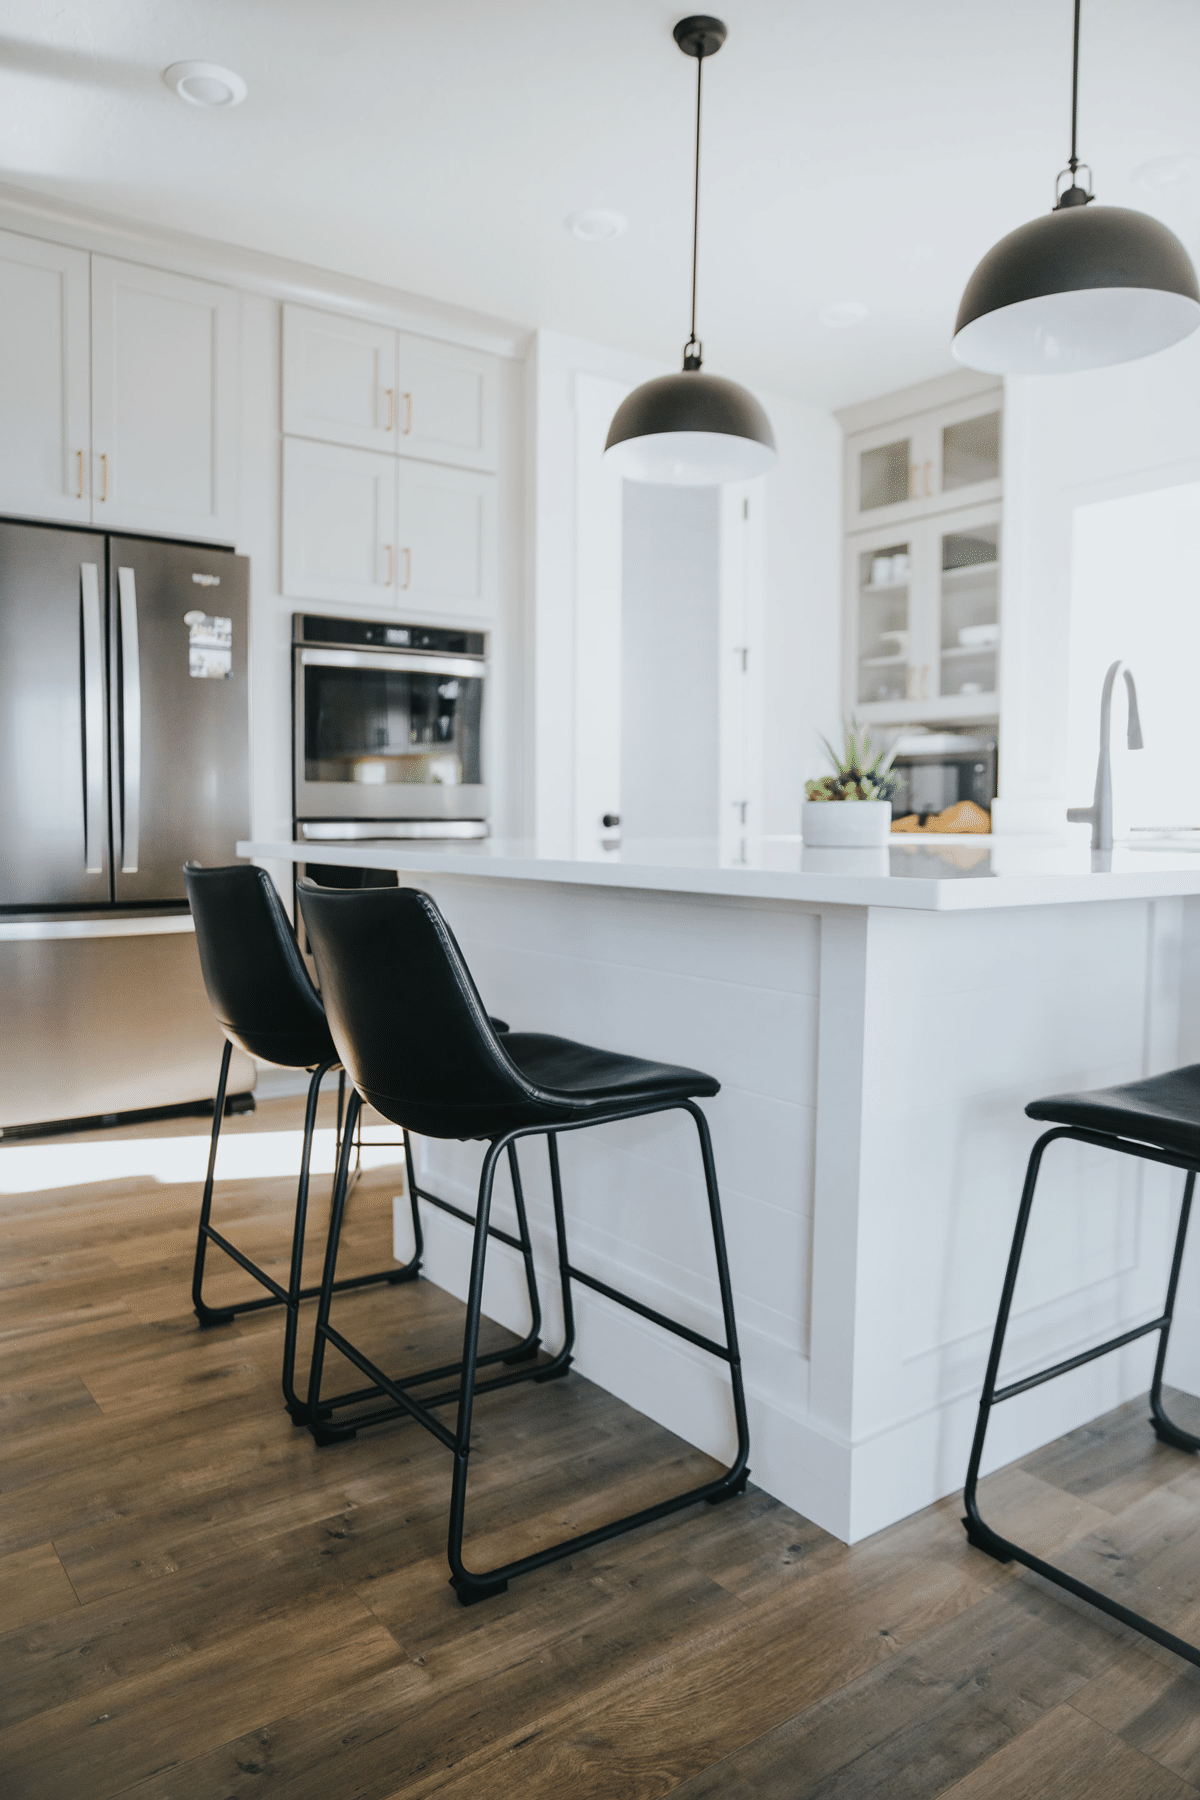 Home Renovation Company Toronto kitchen remodel white granit counter tops and pendant lighting